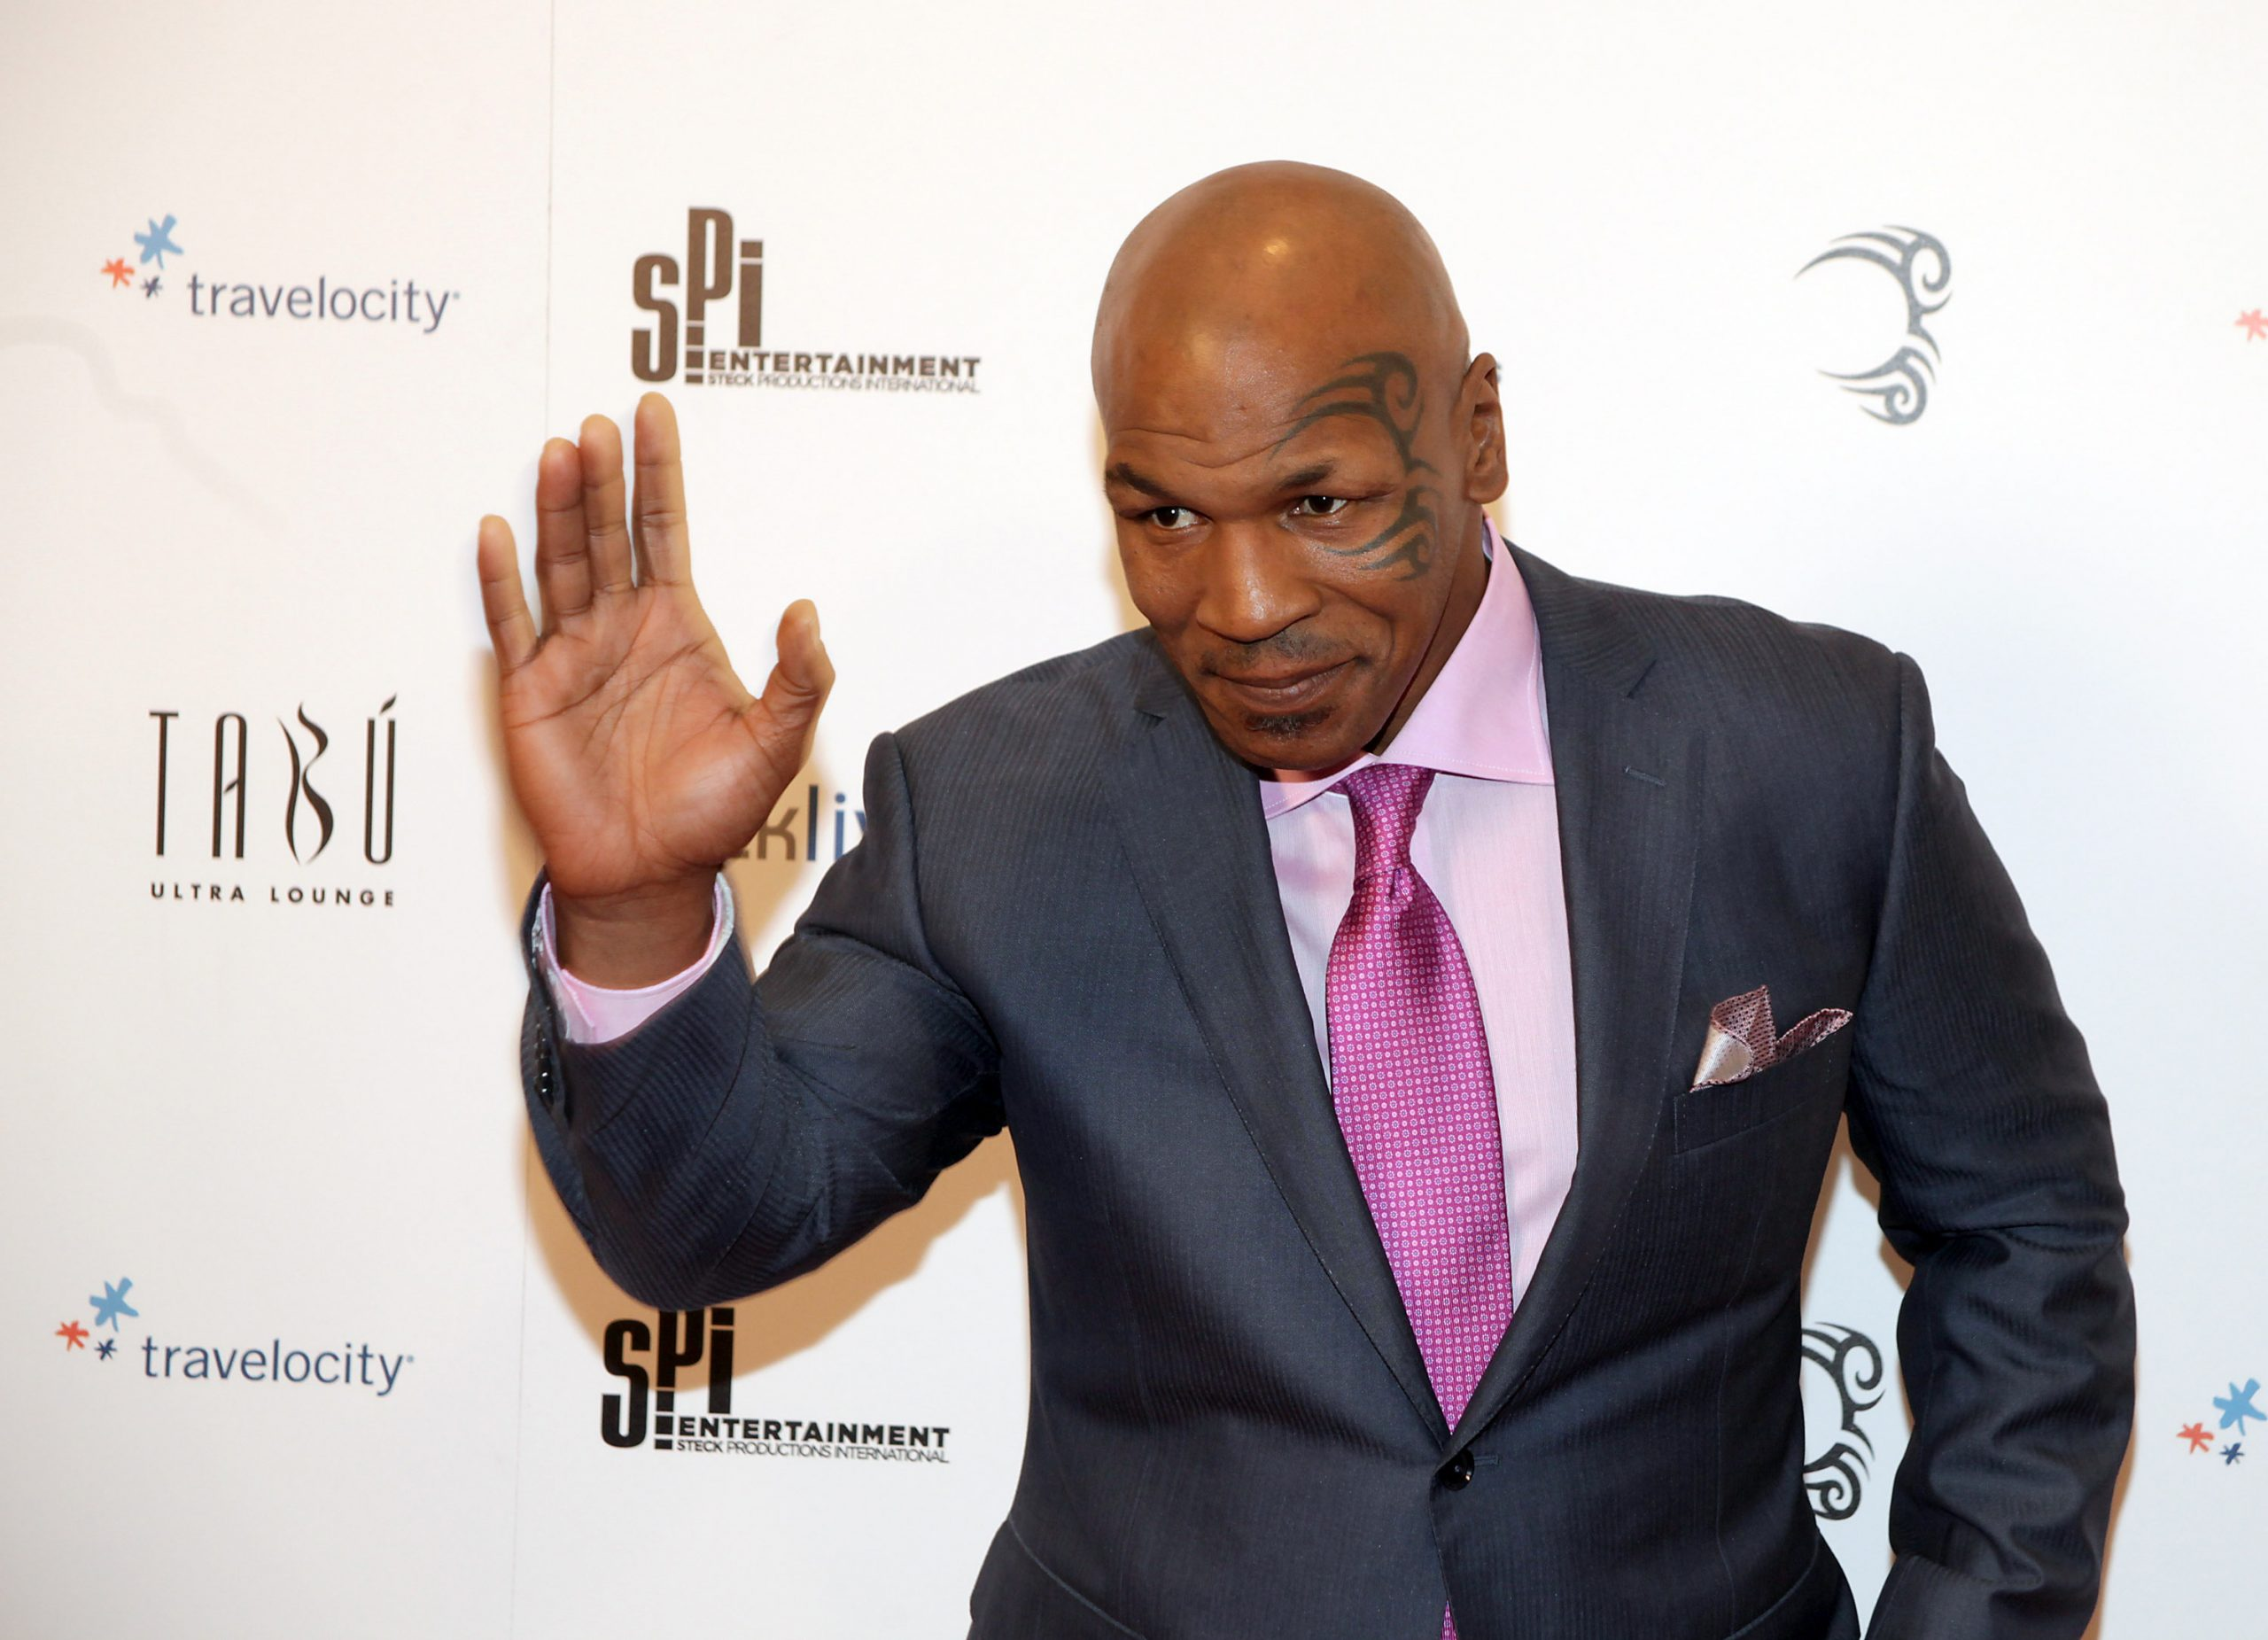 Boxing legend Mike Tyson to make Bollywood debut